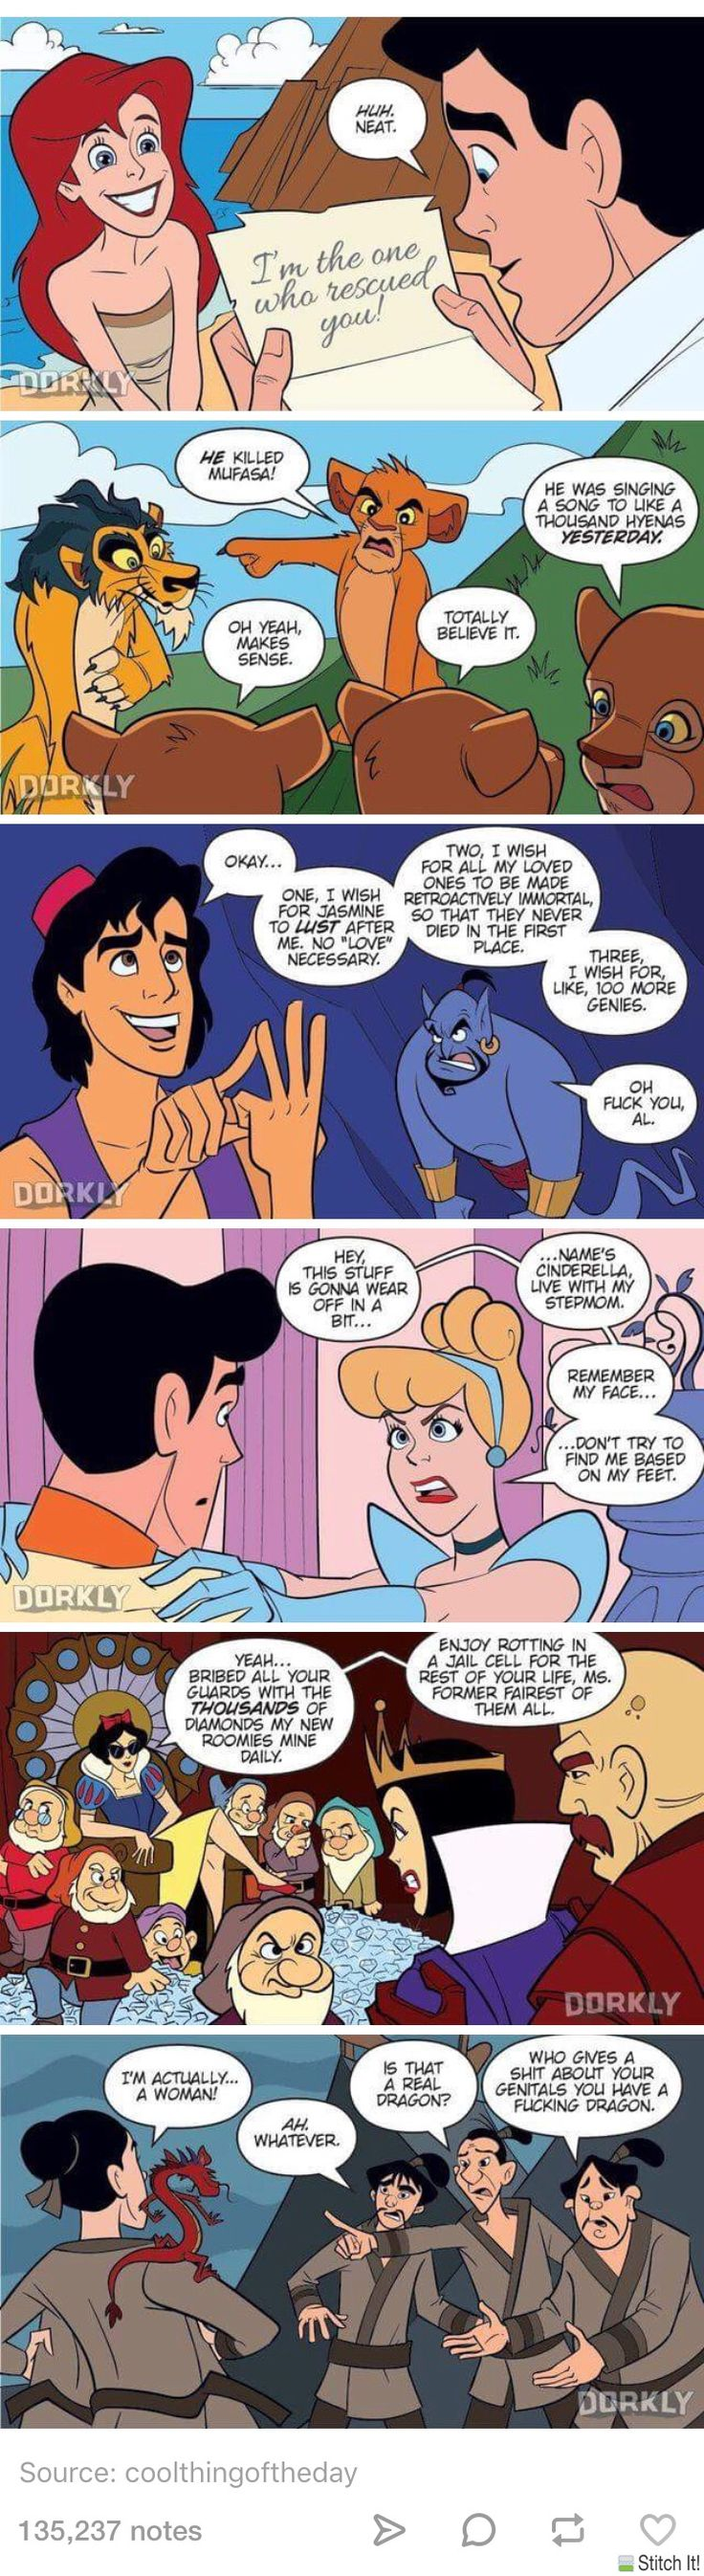 If Disney movies had quicker endings